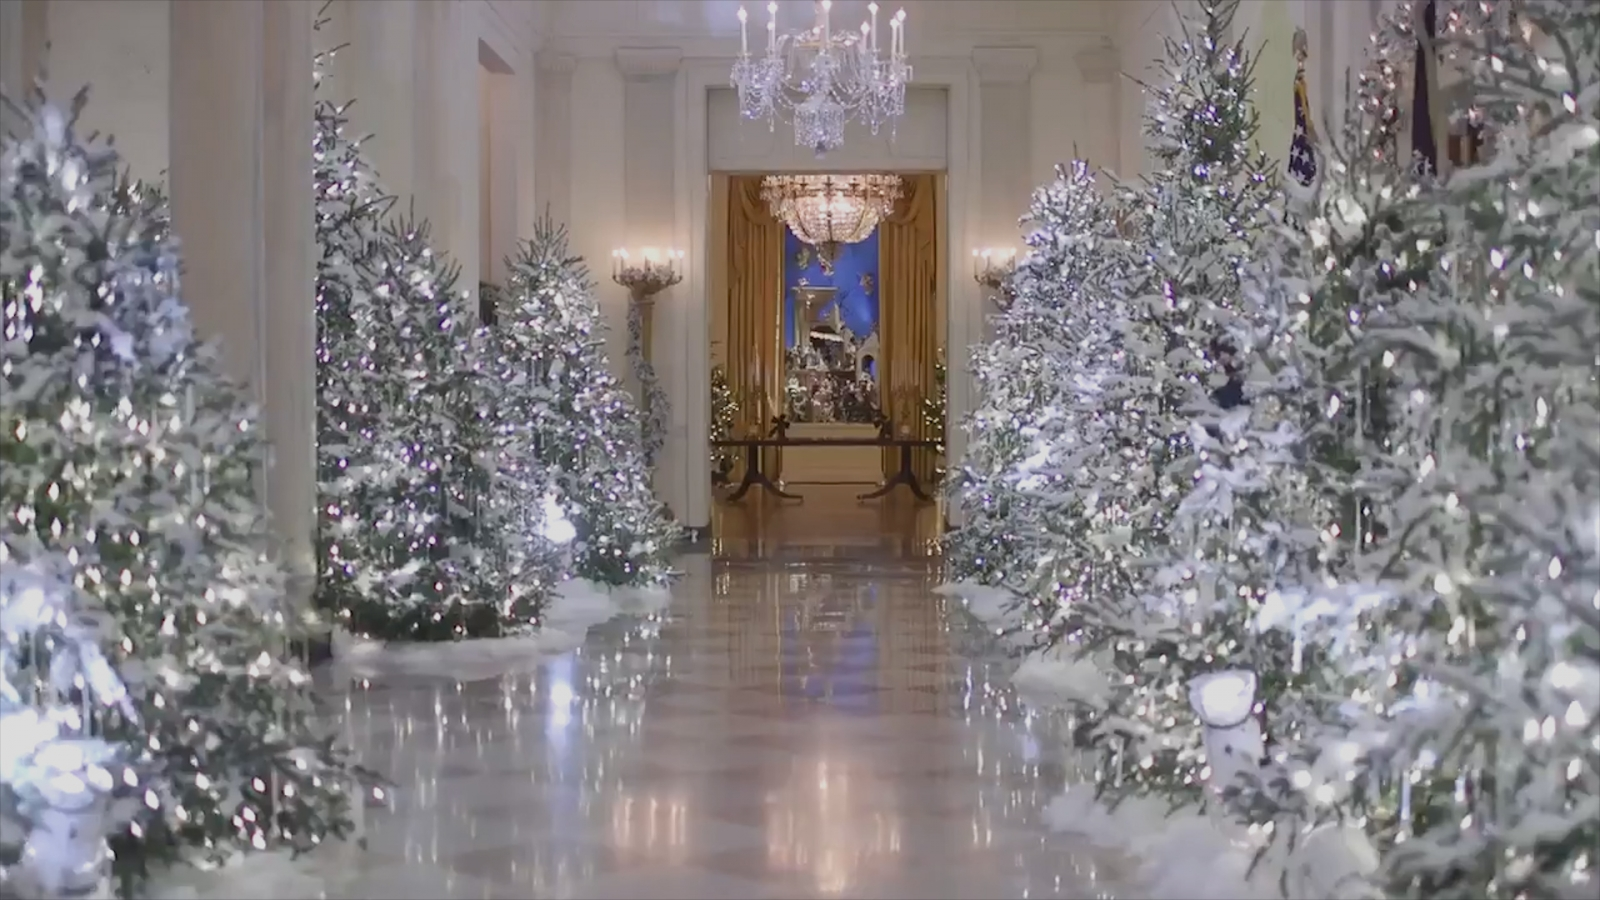 'Terrifying': Melania Trump trolled over 'nightmarish' Christmas decorations  at White House